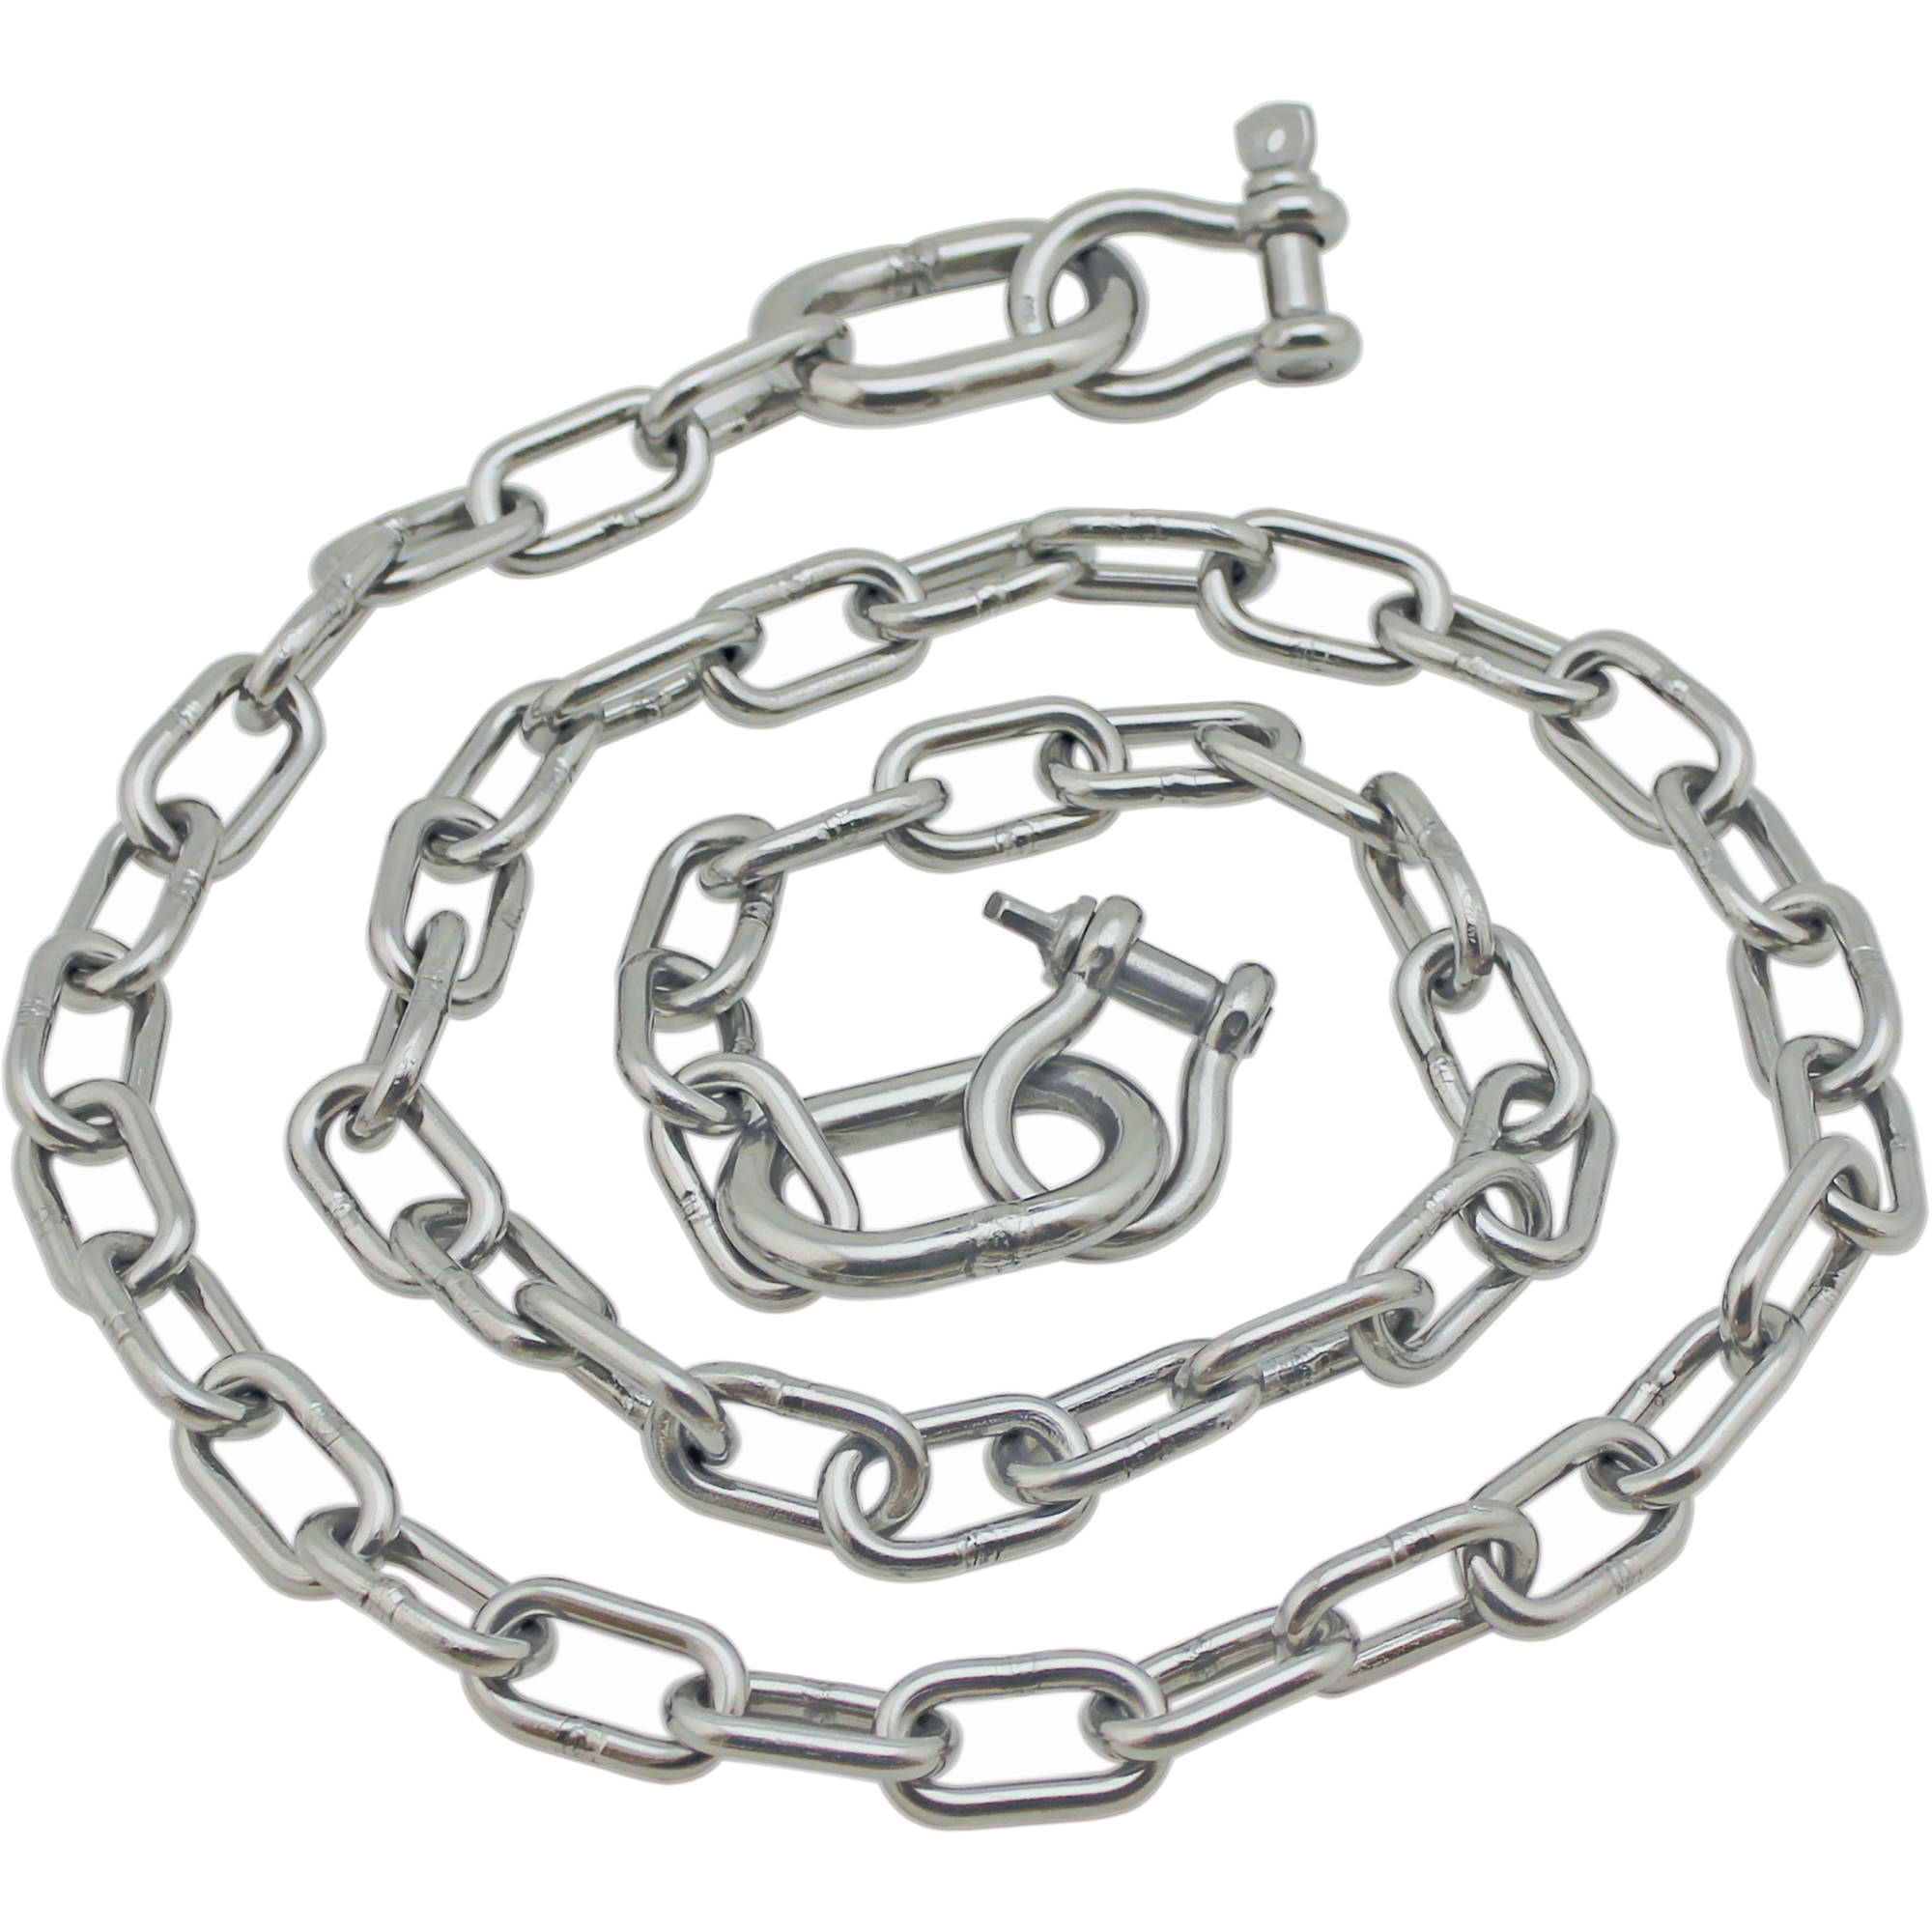 Extreme Max BoatTector Stainless Steel Anchor Chain